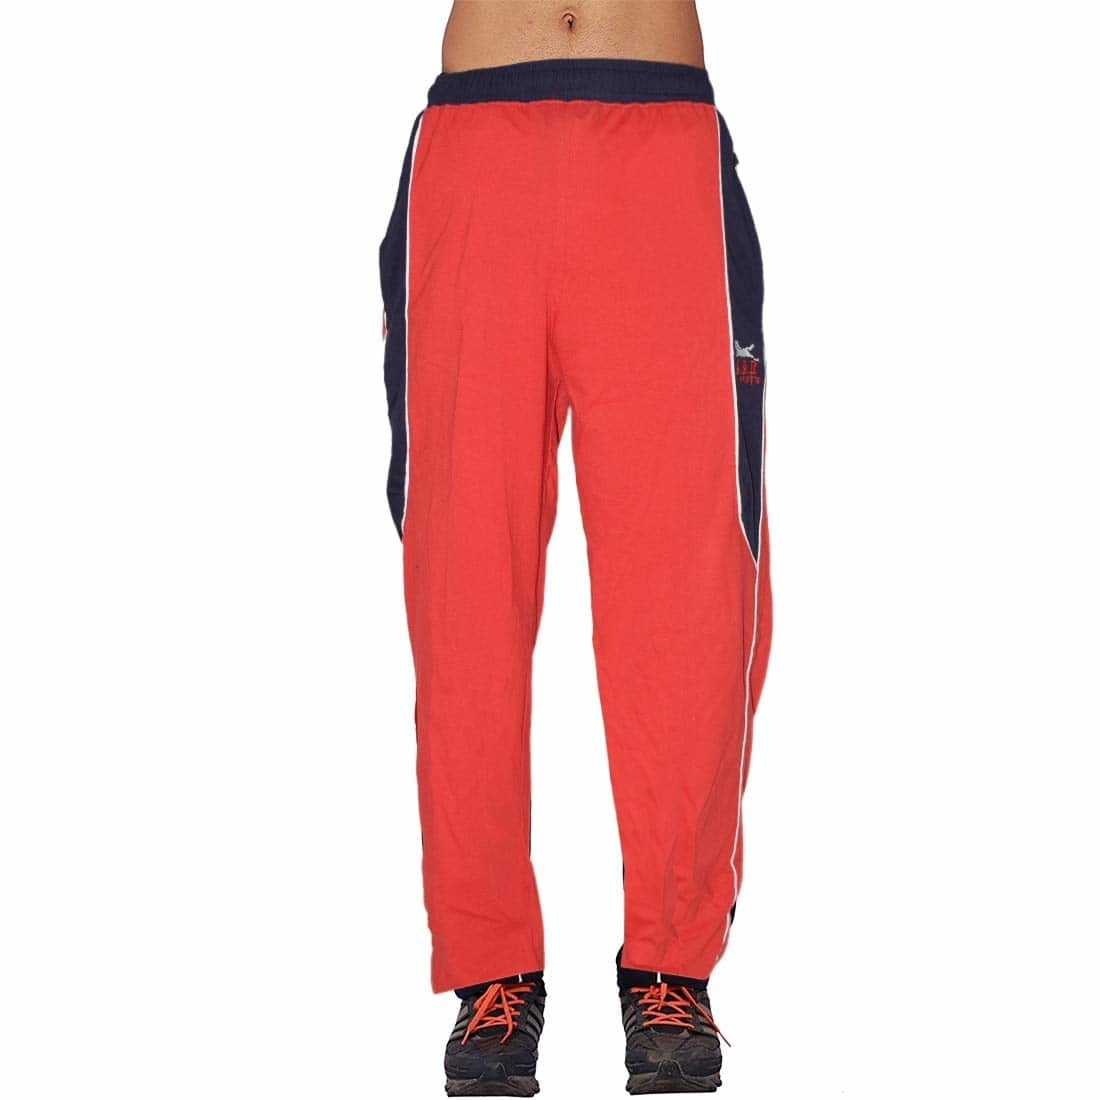 """SSR Track Pants for Women - Red  Occasion: Casual. Ideal for Sports, Jogging, Gym Workouts, Gyming, Sports, etc. The Model in the image is wearing a """"Medium"""" Size trackpants. Please refer to the """"Size Chart"""" to select your Size SOFT FABRIC FEEL: 100% polyster. Pre-washed Cotton polyster Fabric to impart a softer texture to provide comfort with strength. This breathable fabric imparts a softer texture to provide comfort with strength. Perfect for Sports, Gym, Running, Trekking, Jogging, Exercise and Nightwear too. COMFOR FIT: Comfort fit tracksuit for men, with the drawstring feature, that makes these mens tracksuit, casual to wear and easily adjustable to your waist according to desired comfort. The waistband on these tracksuit is made with the highest quality to be comfortable on skin. These tracksuit provides the highest level of softness and comfort during your intense workouts. GREAT STYLE: Designed for comfort and great for all year round use, they are the best running gyming tracksuit that are comfort in fit and yet trendy. These casual tracksuit are trendy and fashionable along with the softness they provide. CARE INSTRUCTIONS: Cold water machine wash. Do not bleach or wash with chlorine based detergent for these tracksuit for women.  Buy Now :- https://amzn.to/2U9FAVB  #tracksuit #suit #gymsuit #gympants #hoodie #trackshorts #shorts #pants #sportswear #womenspants #menspants #mensshorts #menssuits #trackshortsformen"""